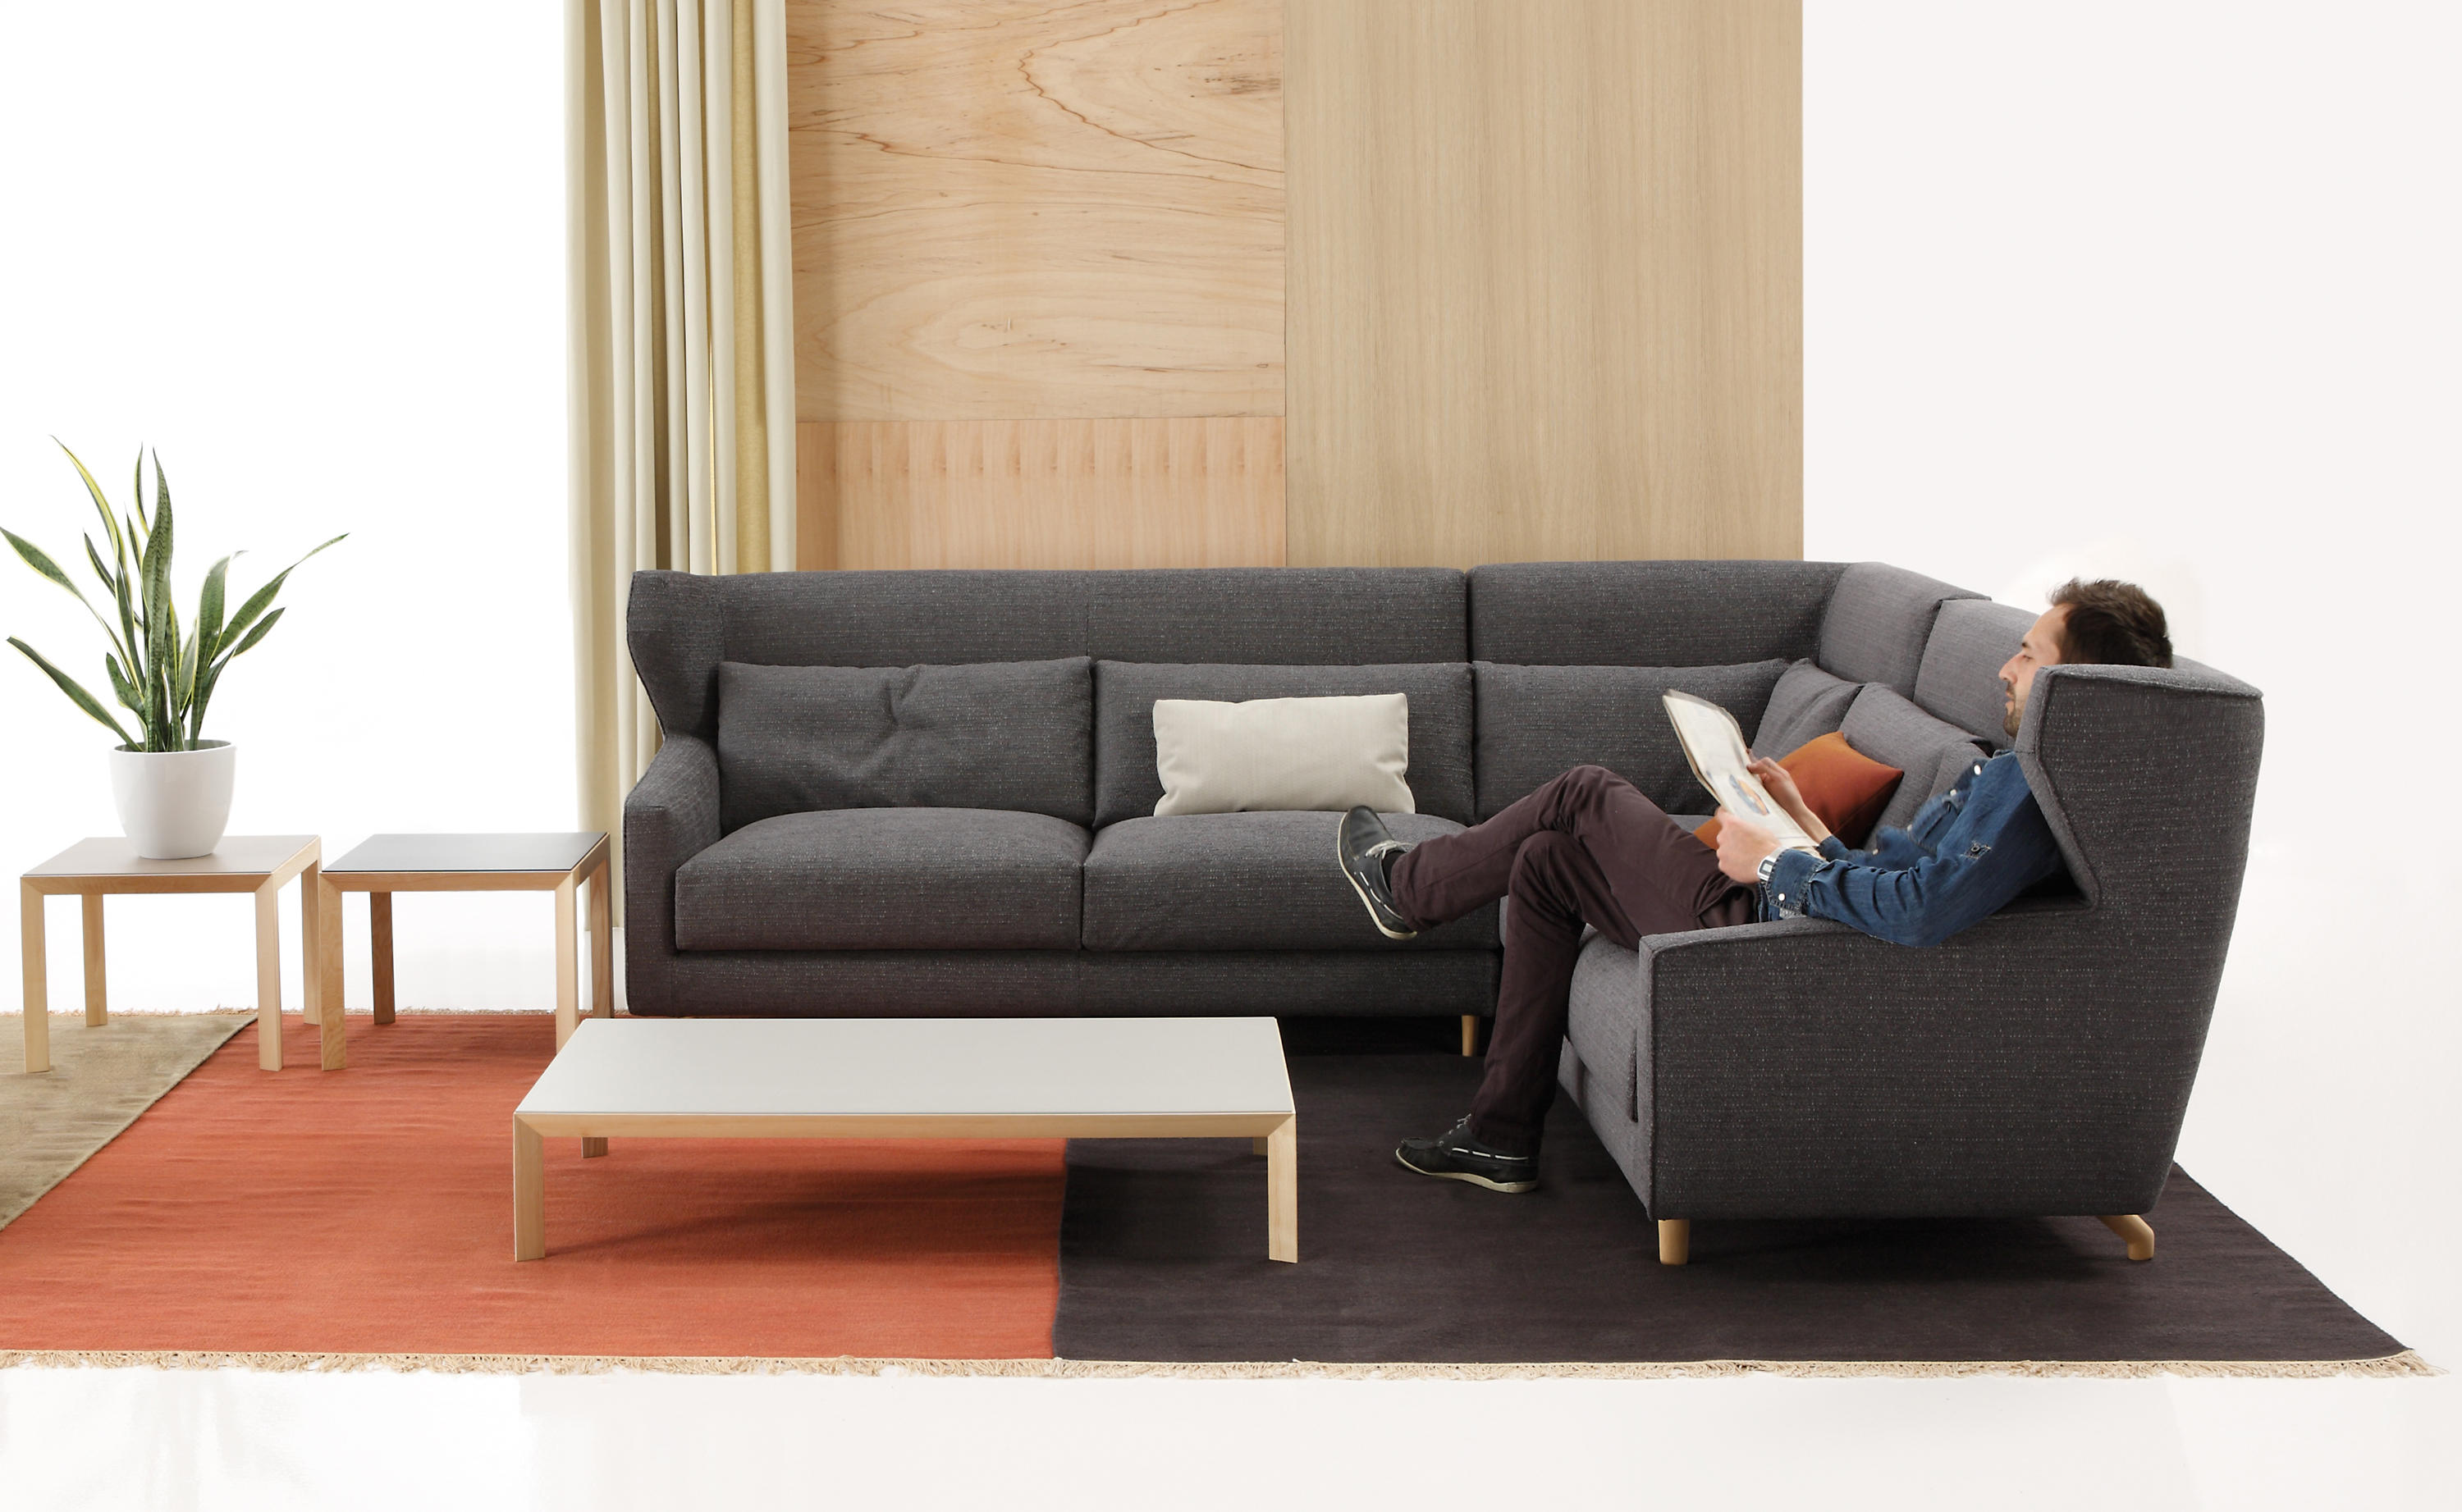 Sancal Folk Of Folk Canap S D 39 Attente De Sancal Architonic